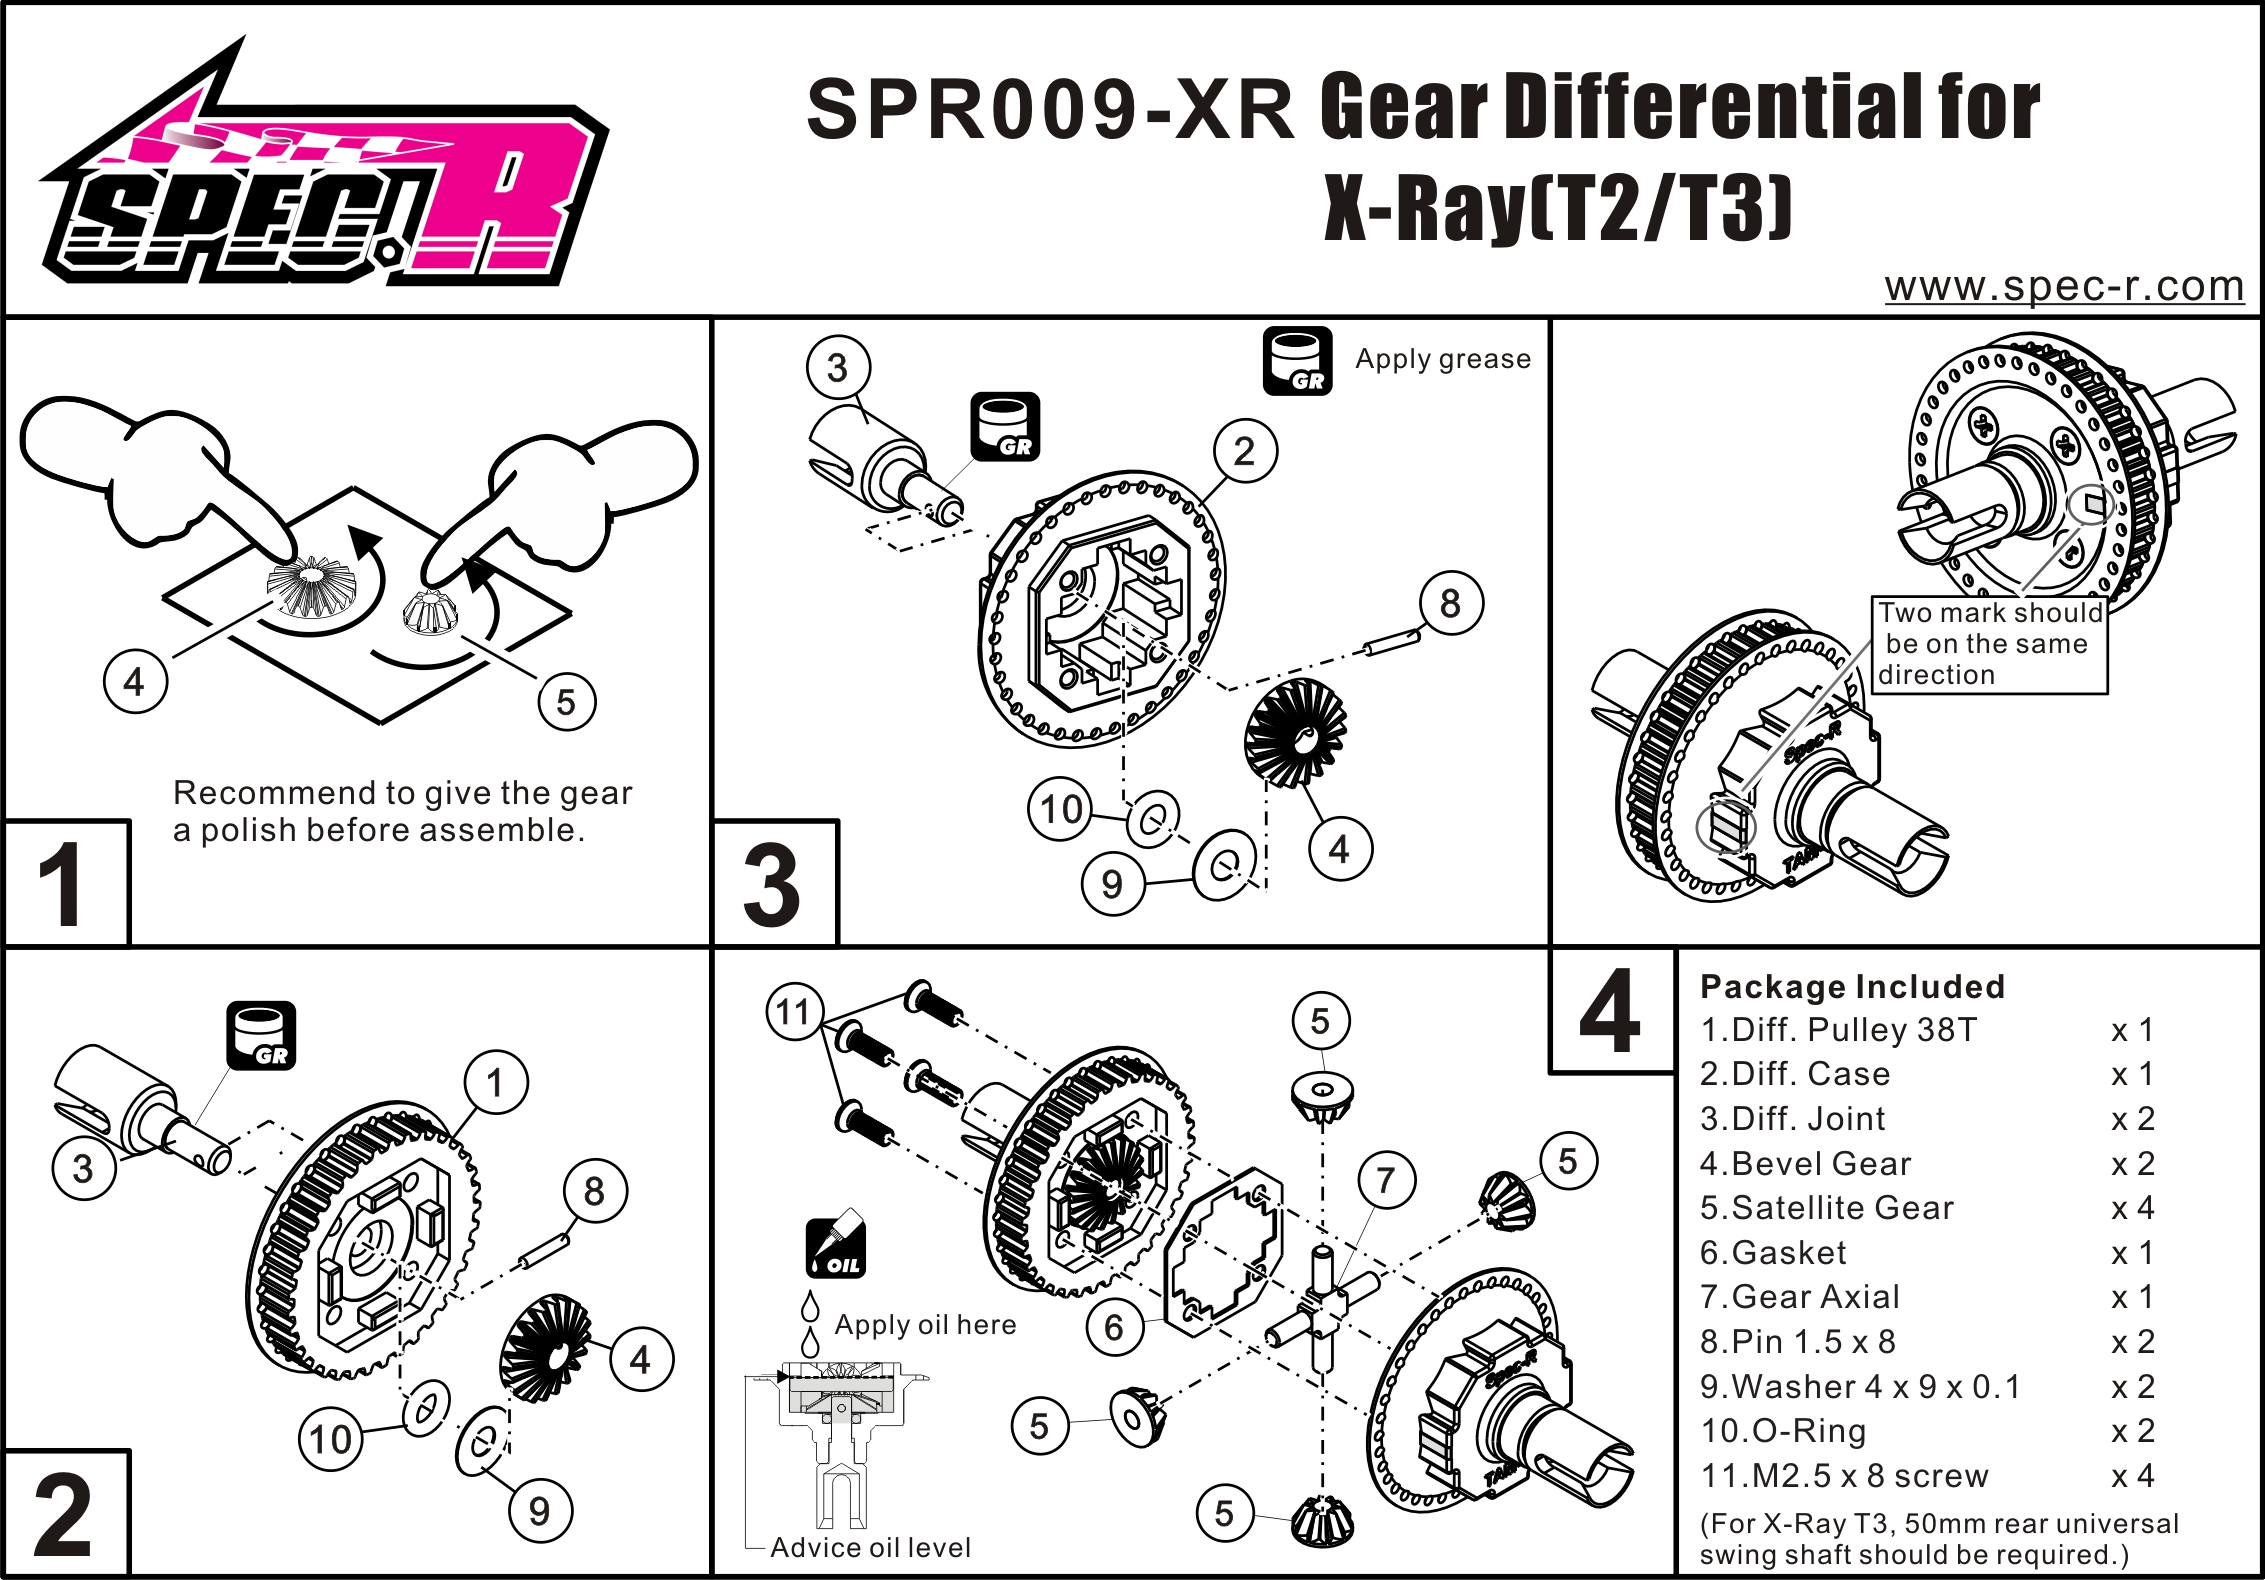 Gear Differential Set 38t For X Ray T2 T3 Alu Outdrive Ver Spr009 Xr